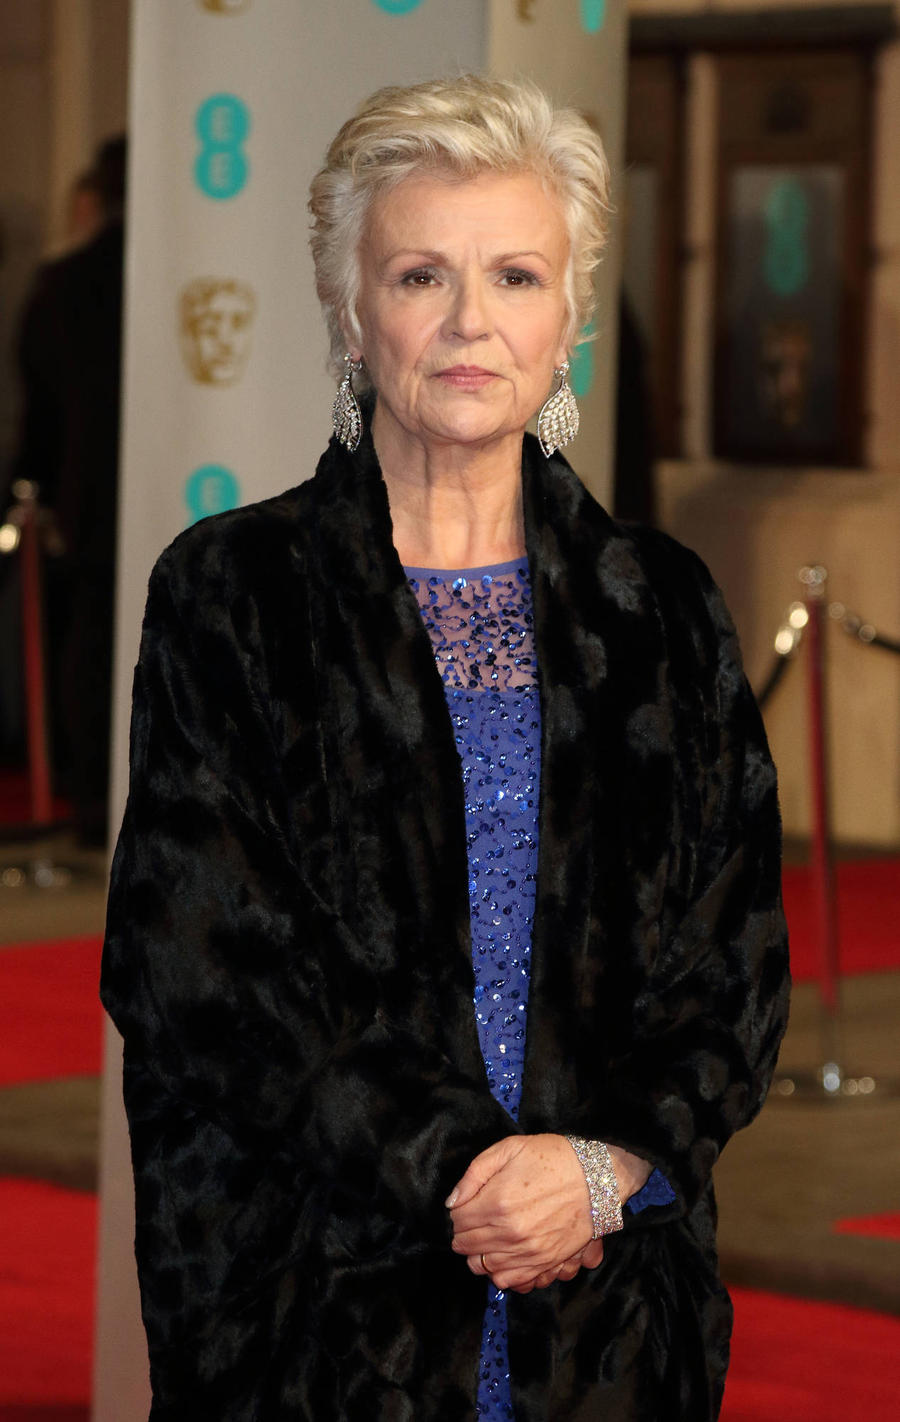 Julie Walters Worries Over Expensive Lost Earring